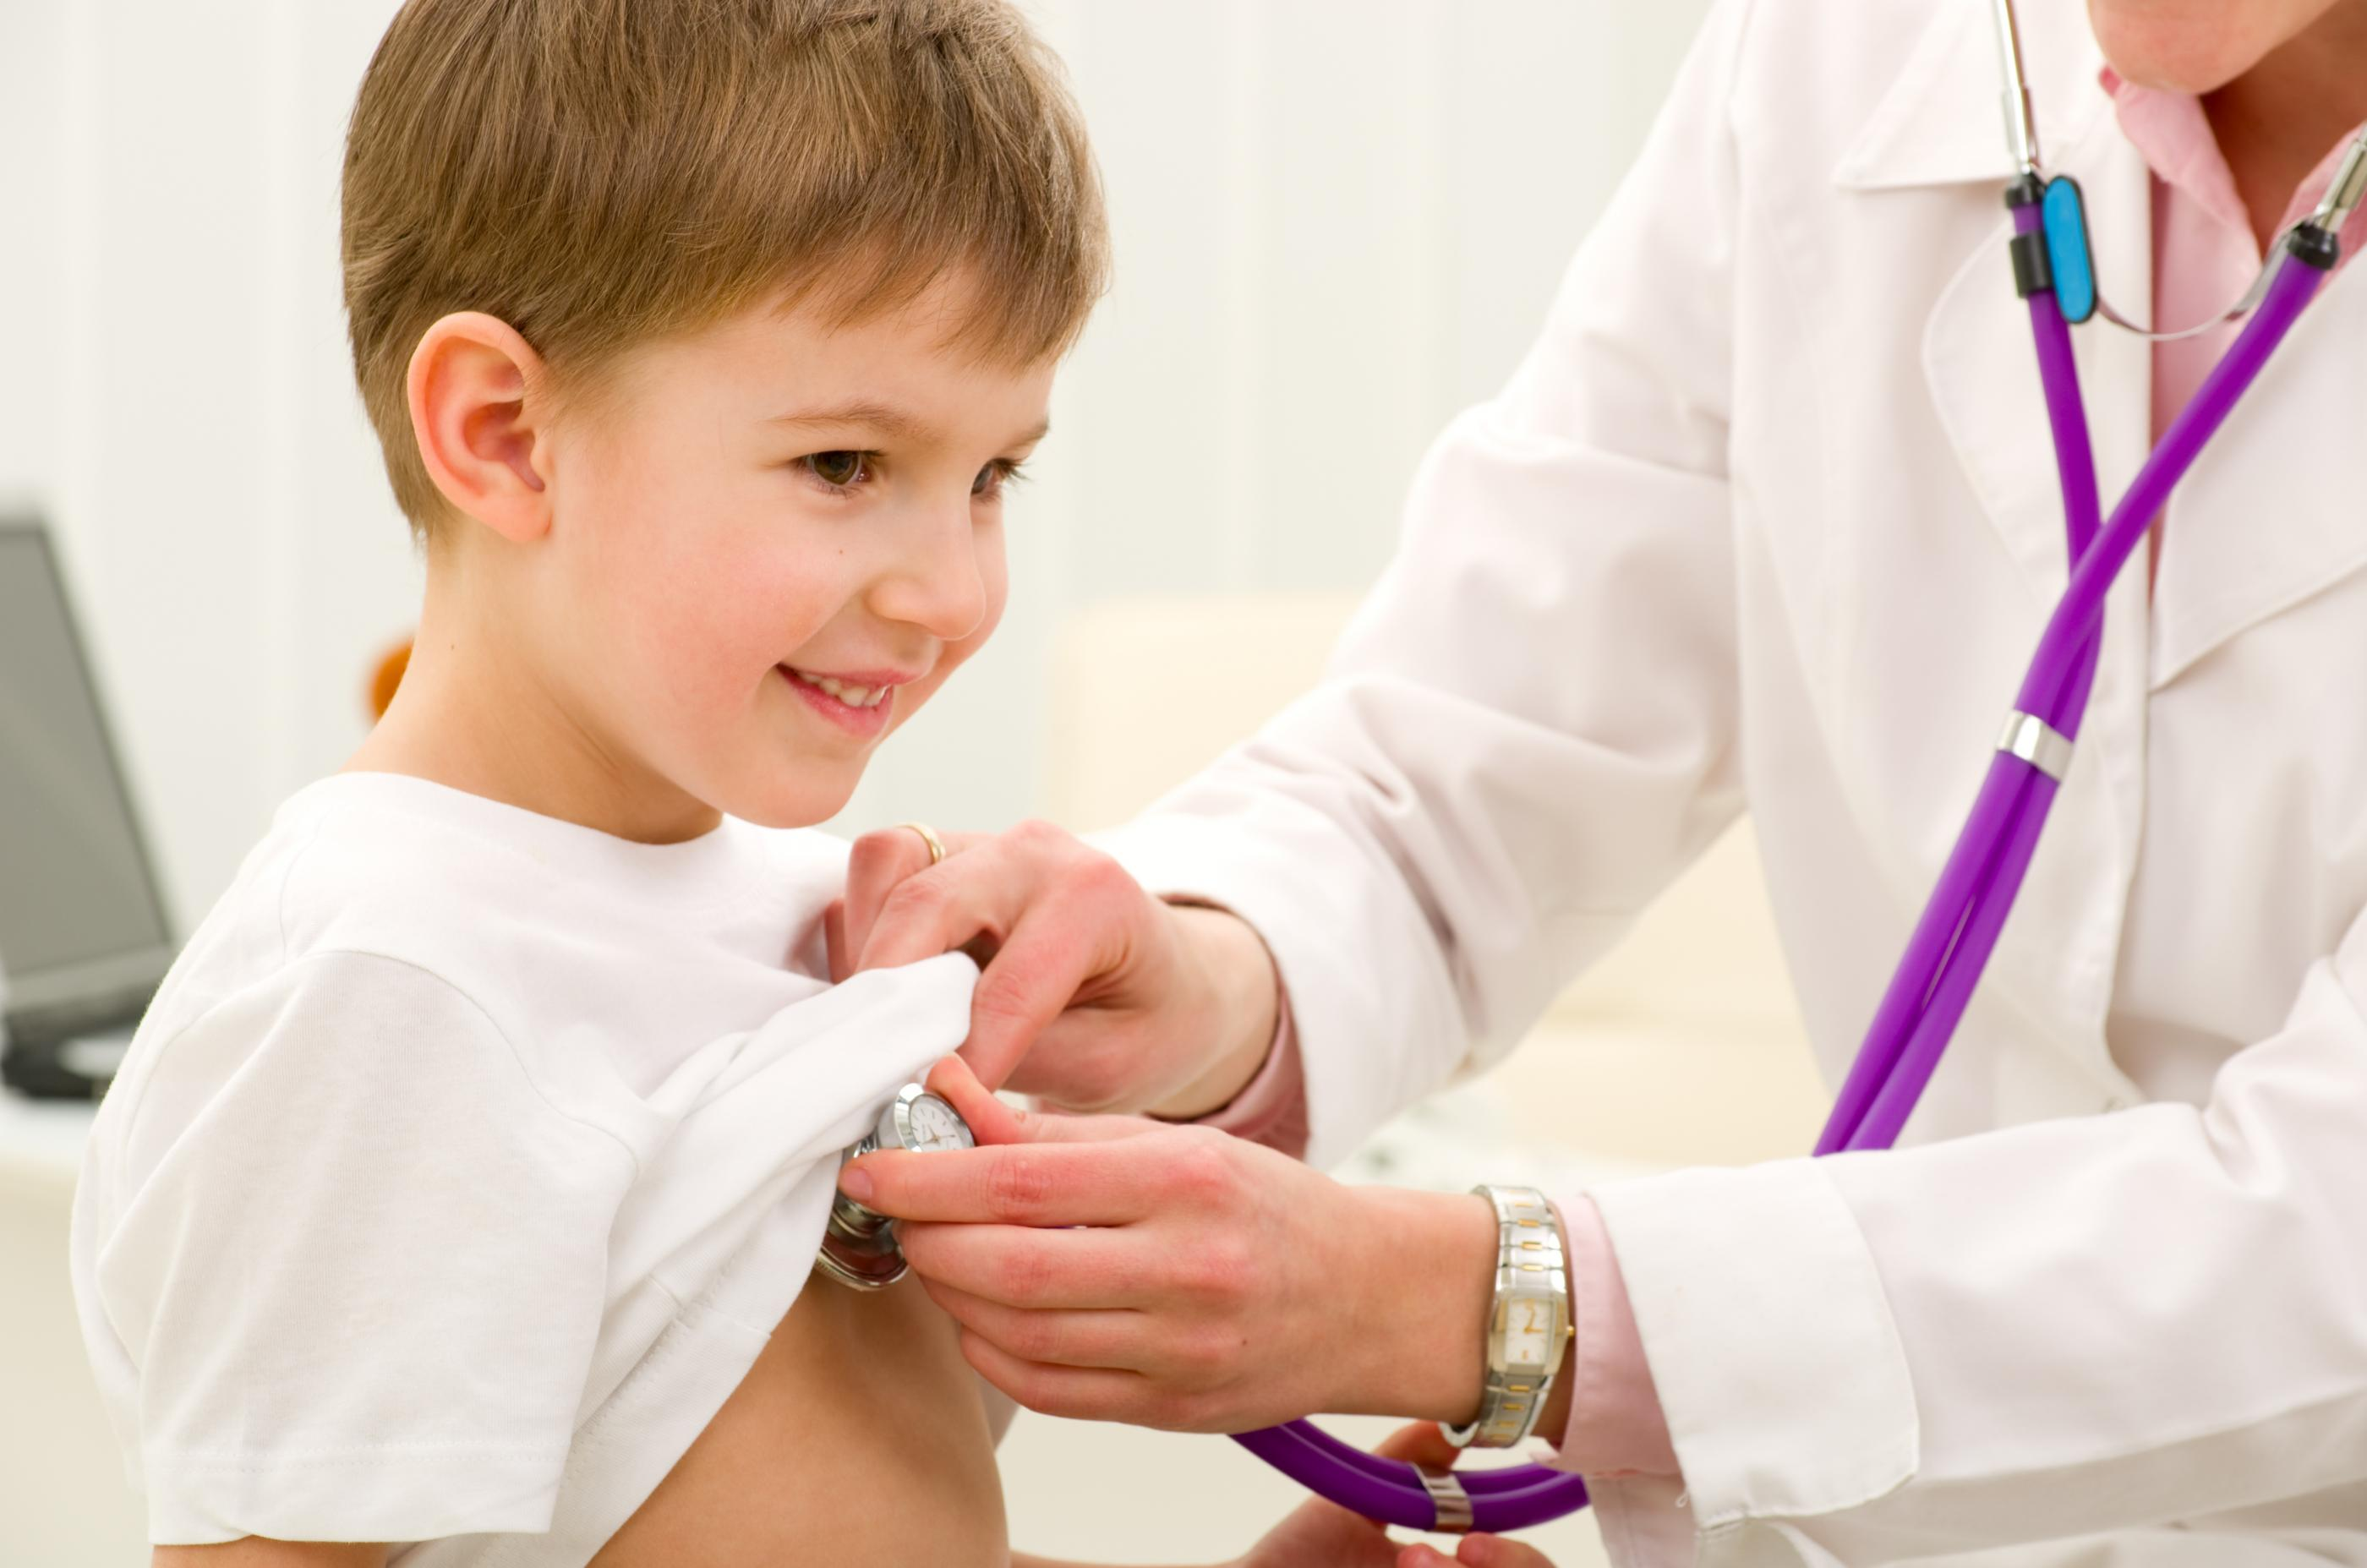 Tips to Follow to Avoid Heat Rashes in Children